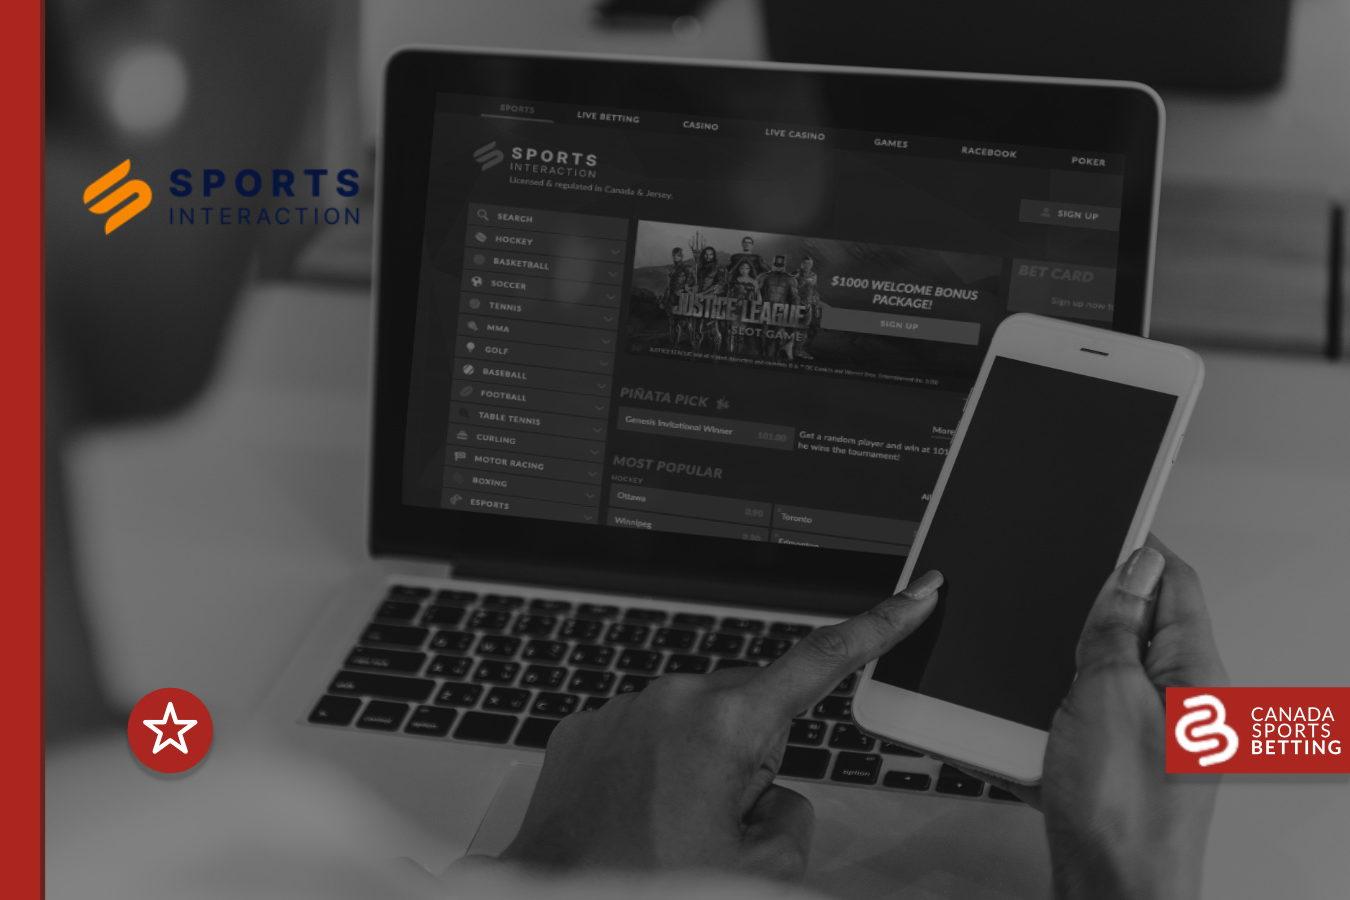 Sports Interaction (SIA) New Streaming Service!